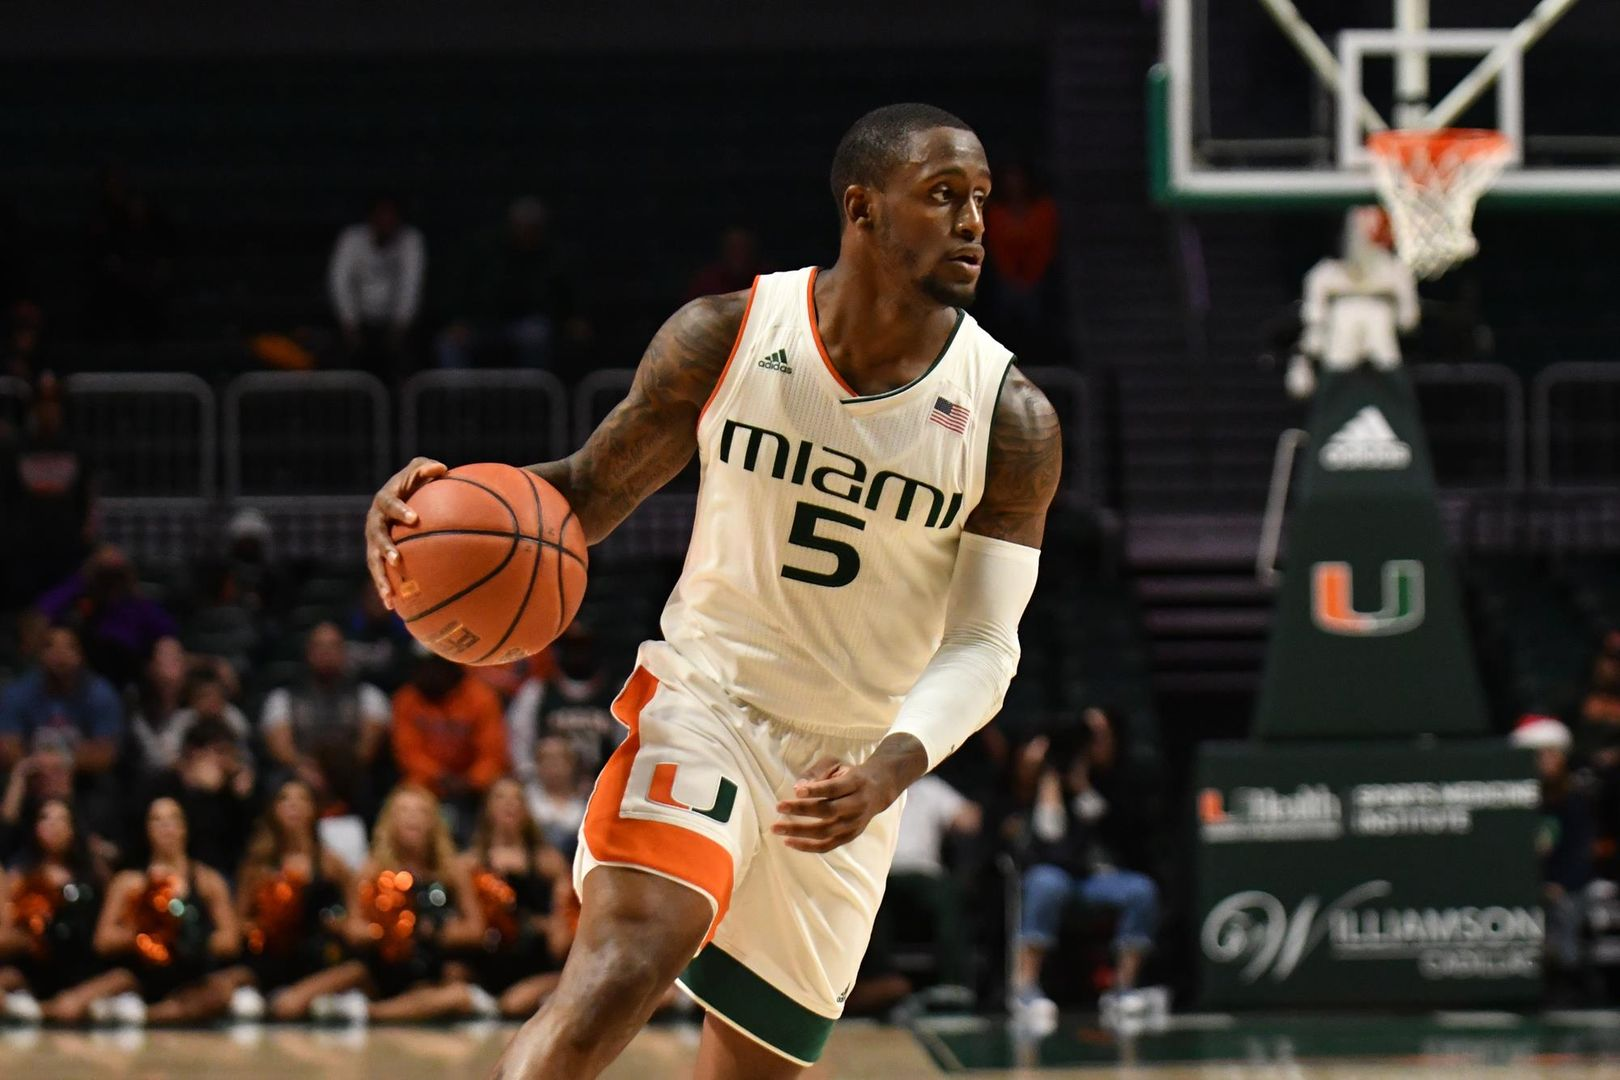 Canes Control Campbell in 73-62 Win